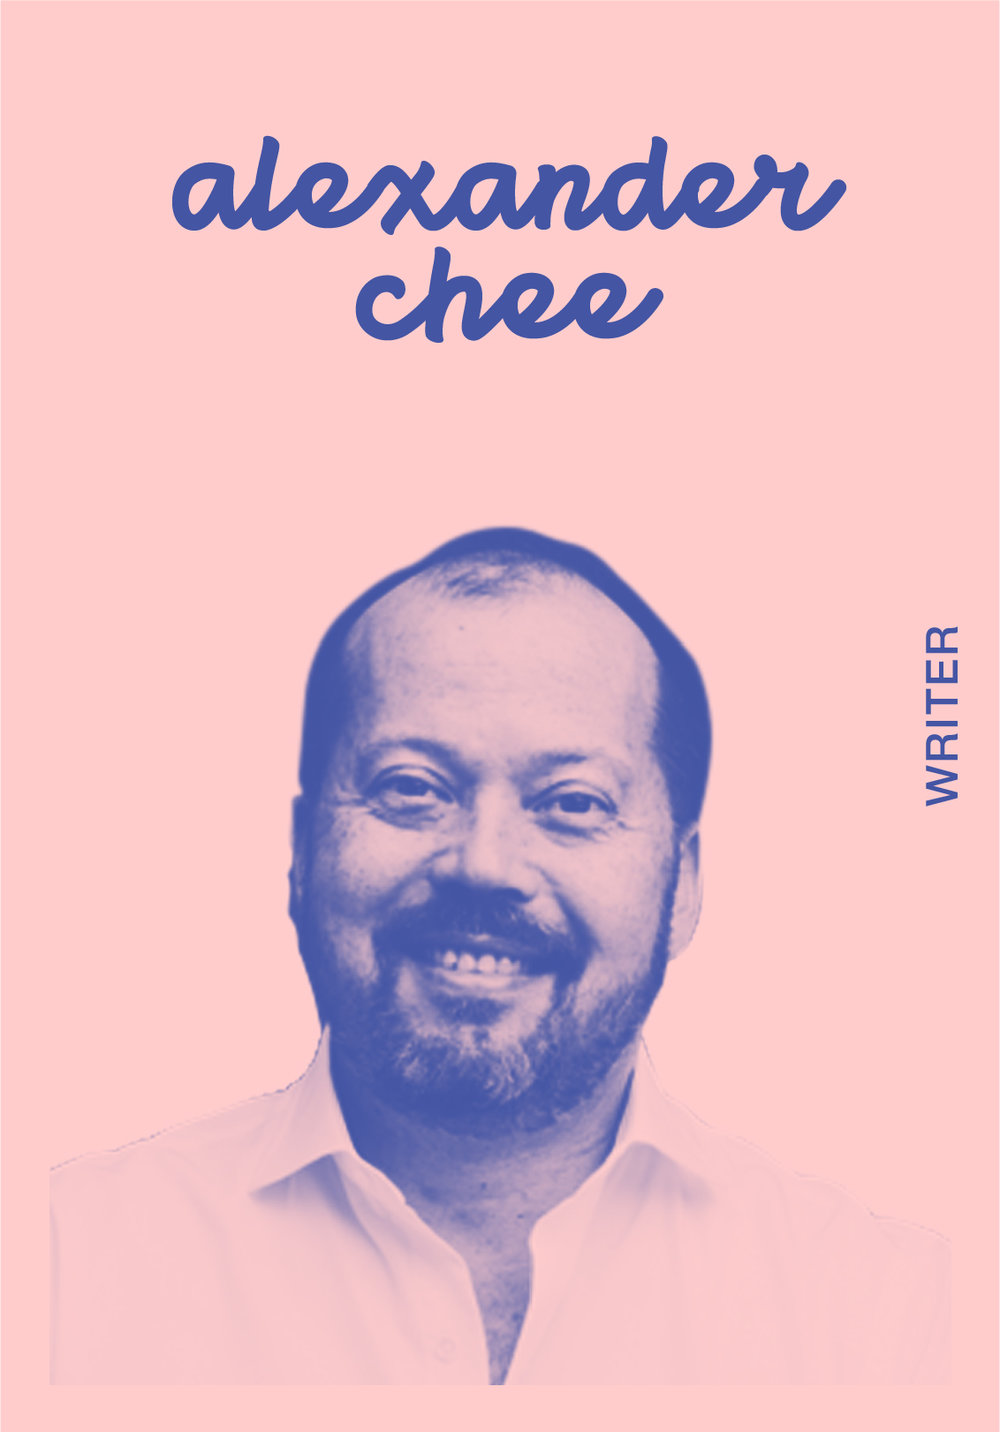 ALEXANDER CHEE   WEBSITE   @ALEXANDERCHEE   IG: CHEEMOBILE